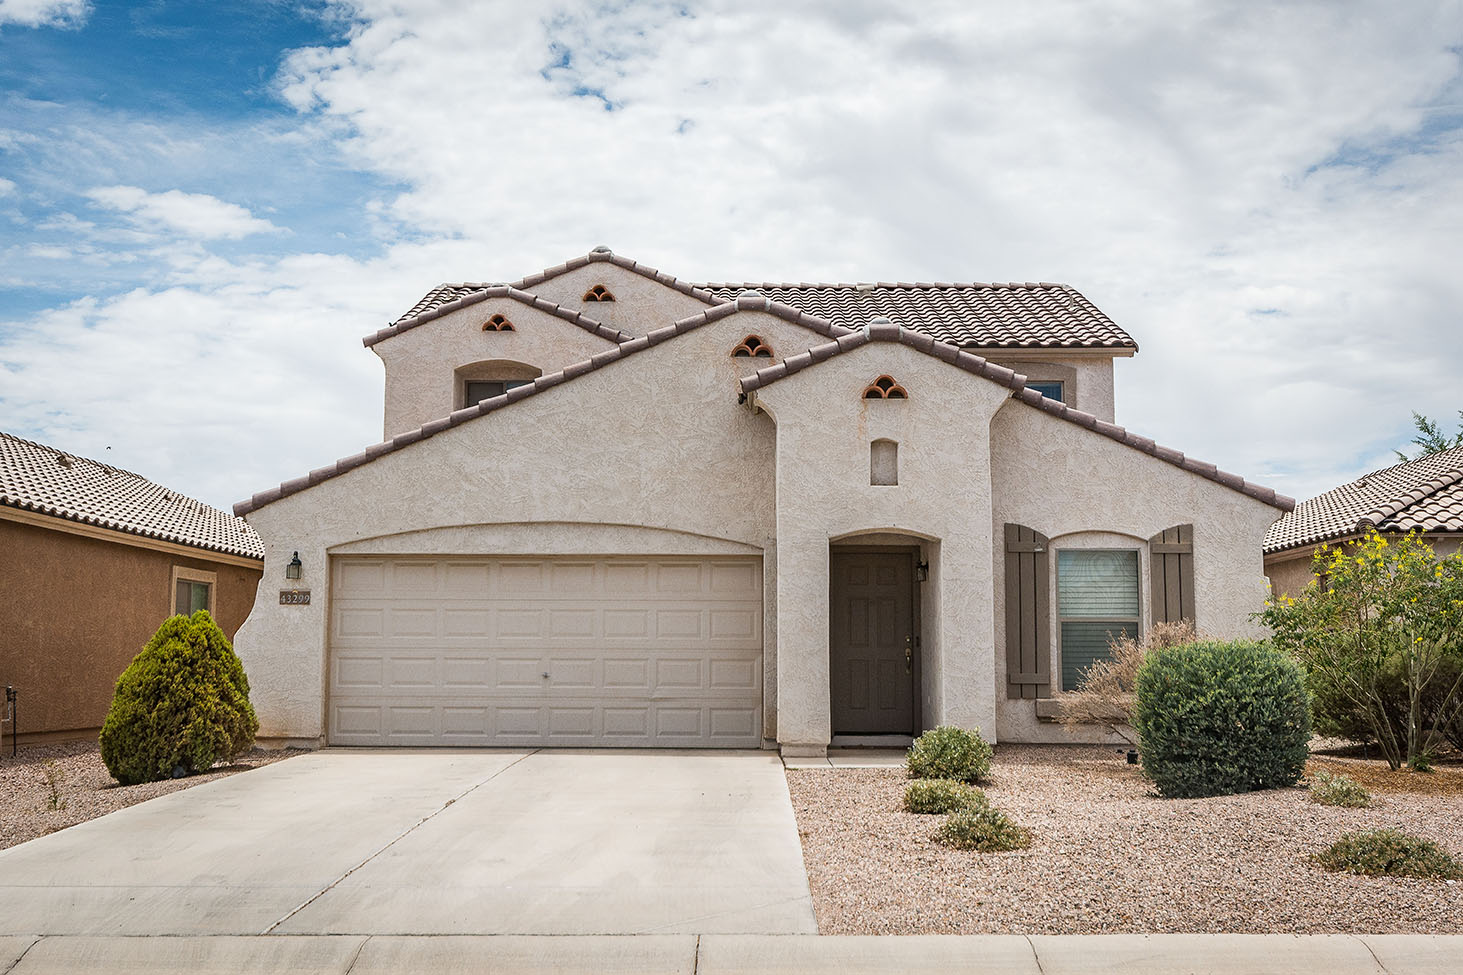 Short sale in senita least expensive home in maricopa for Least expensive house